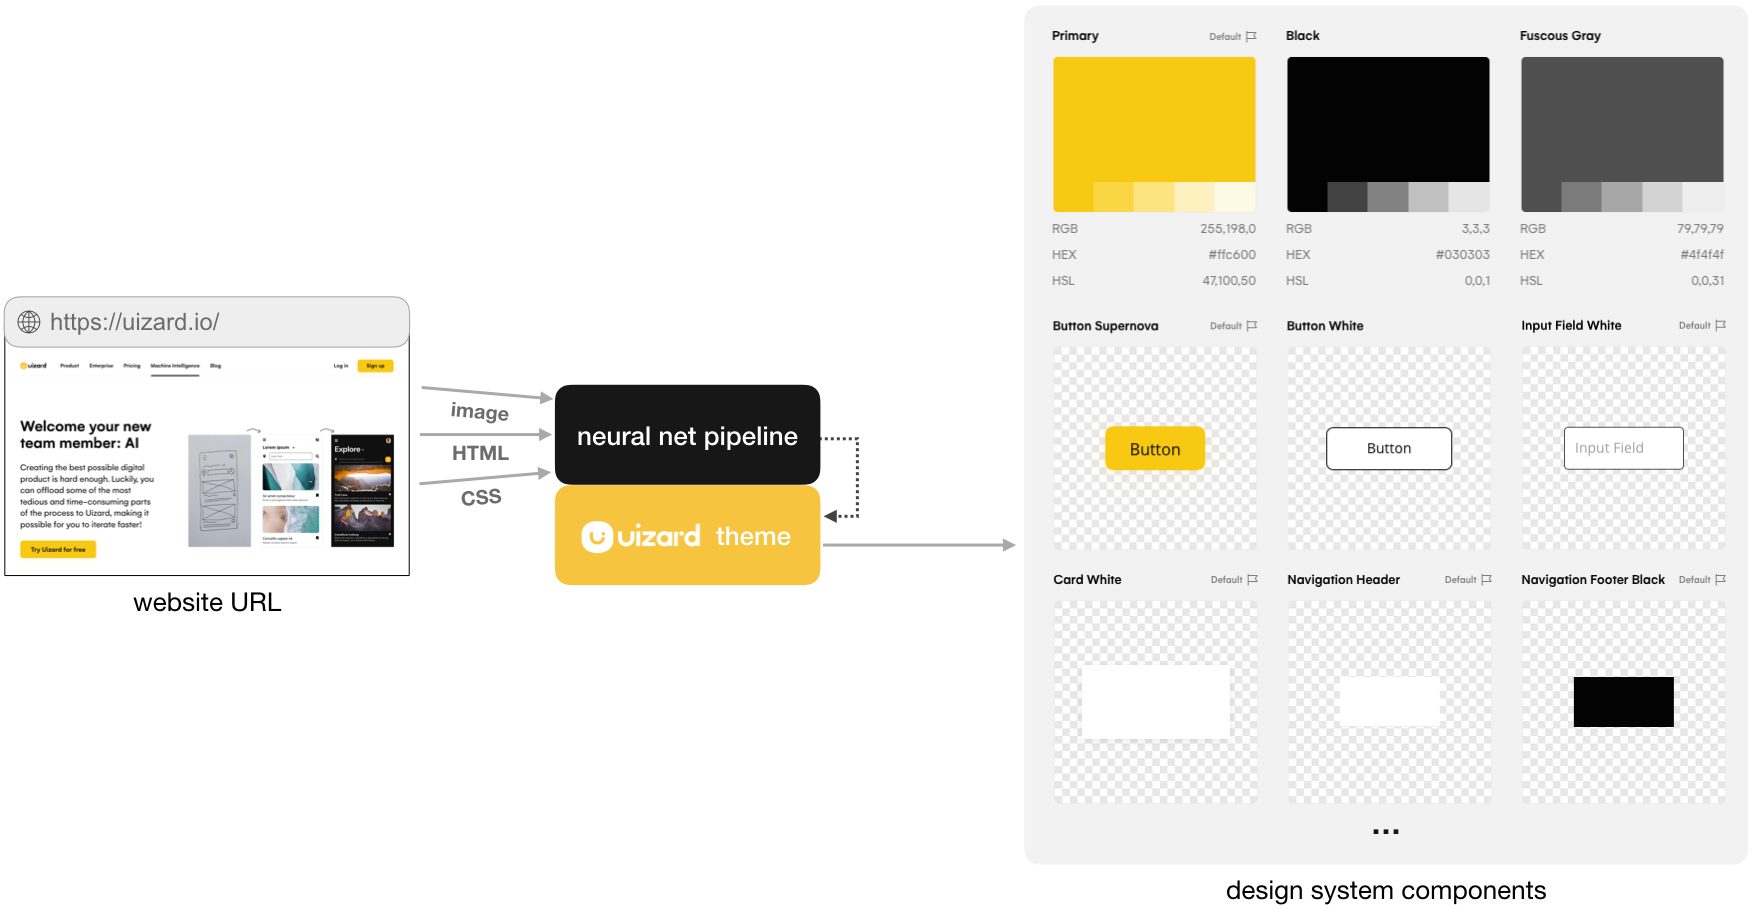 Uizard product: generating design system components from a URL by processing HTML, CSS, and a screen capture.